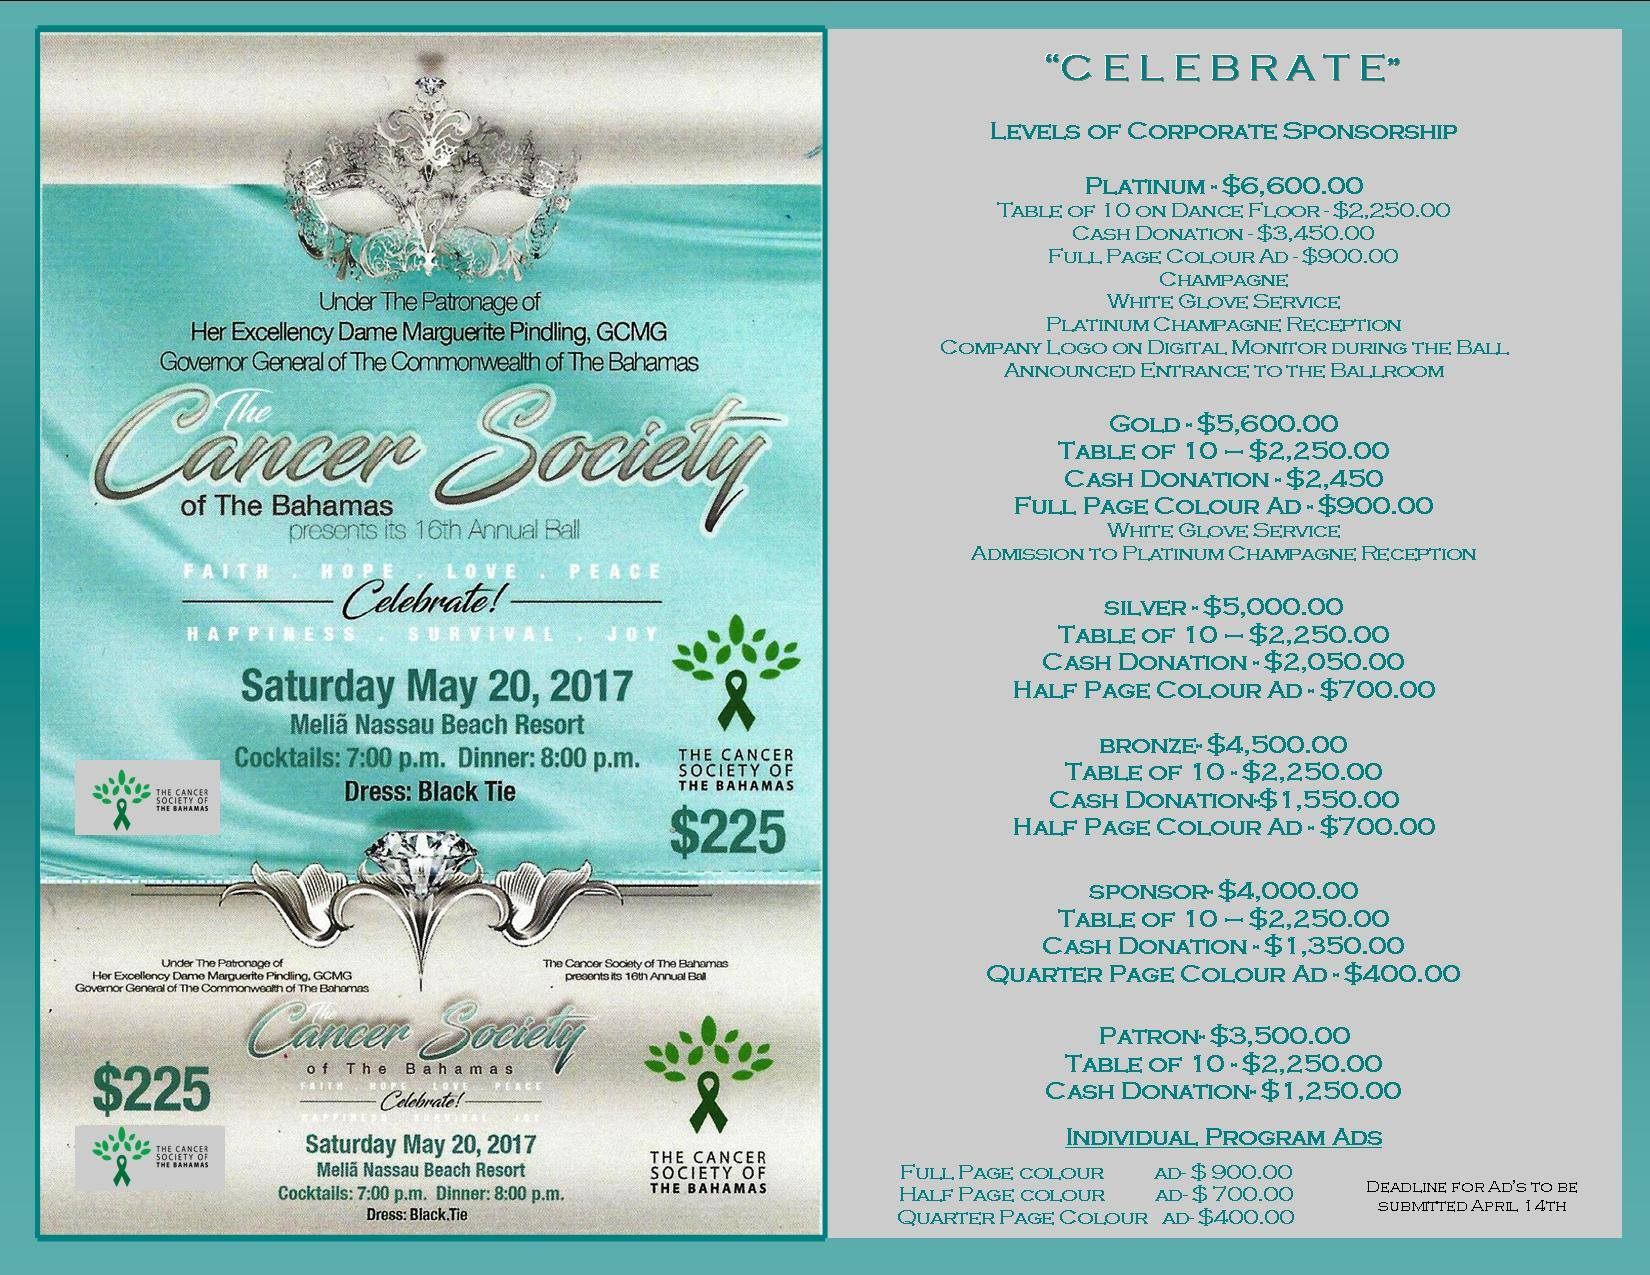 16th Annual Cancer Society of The Bahamas Ball